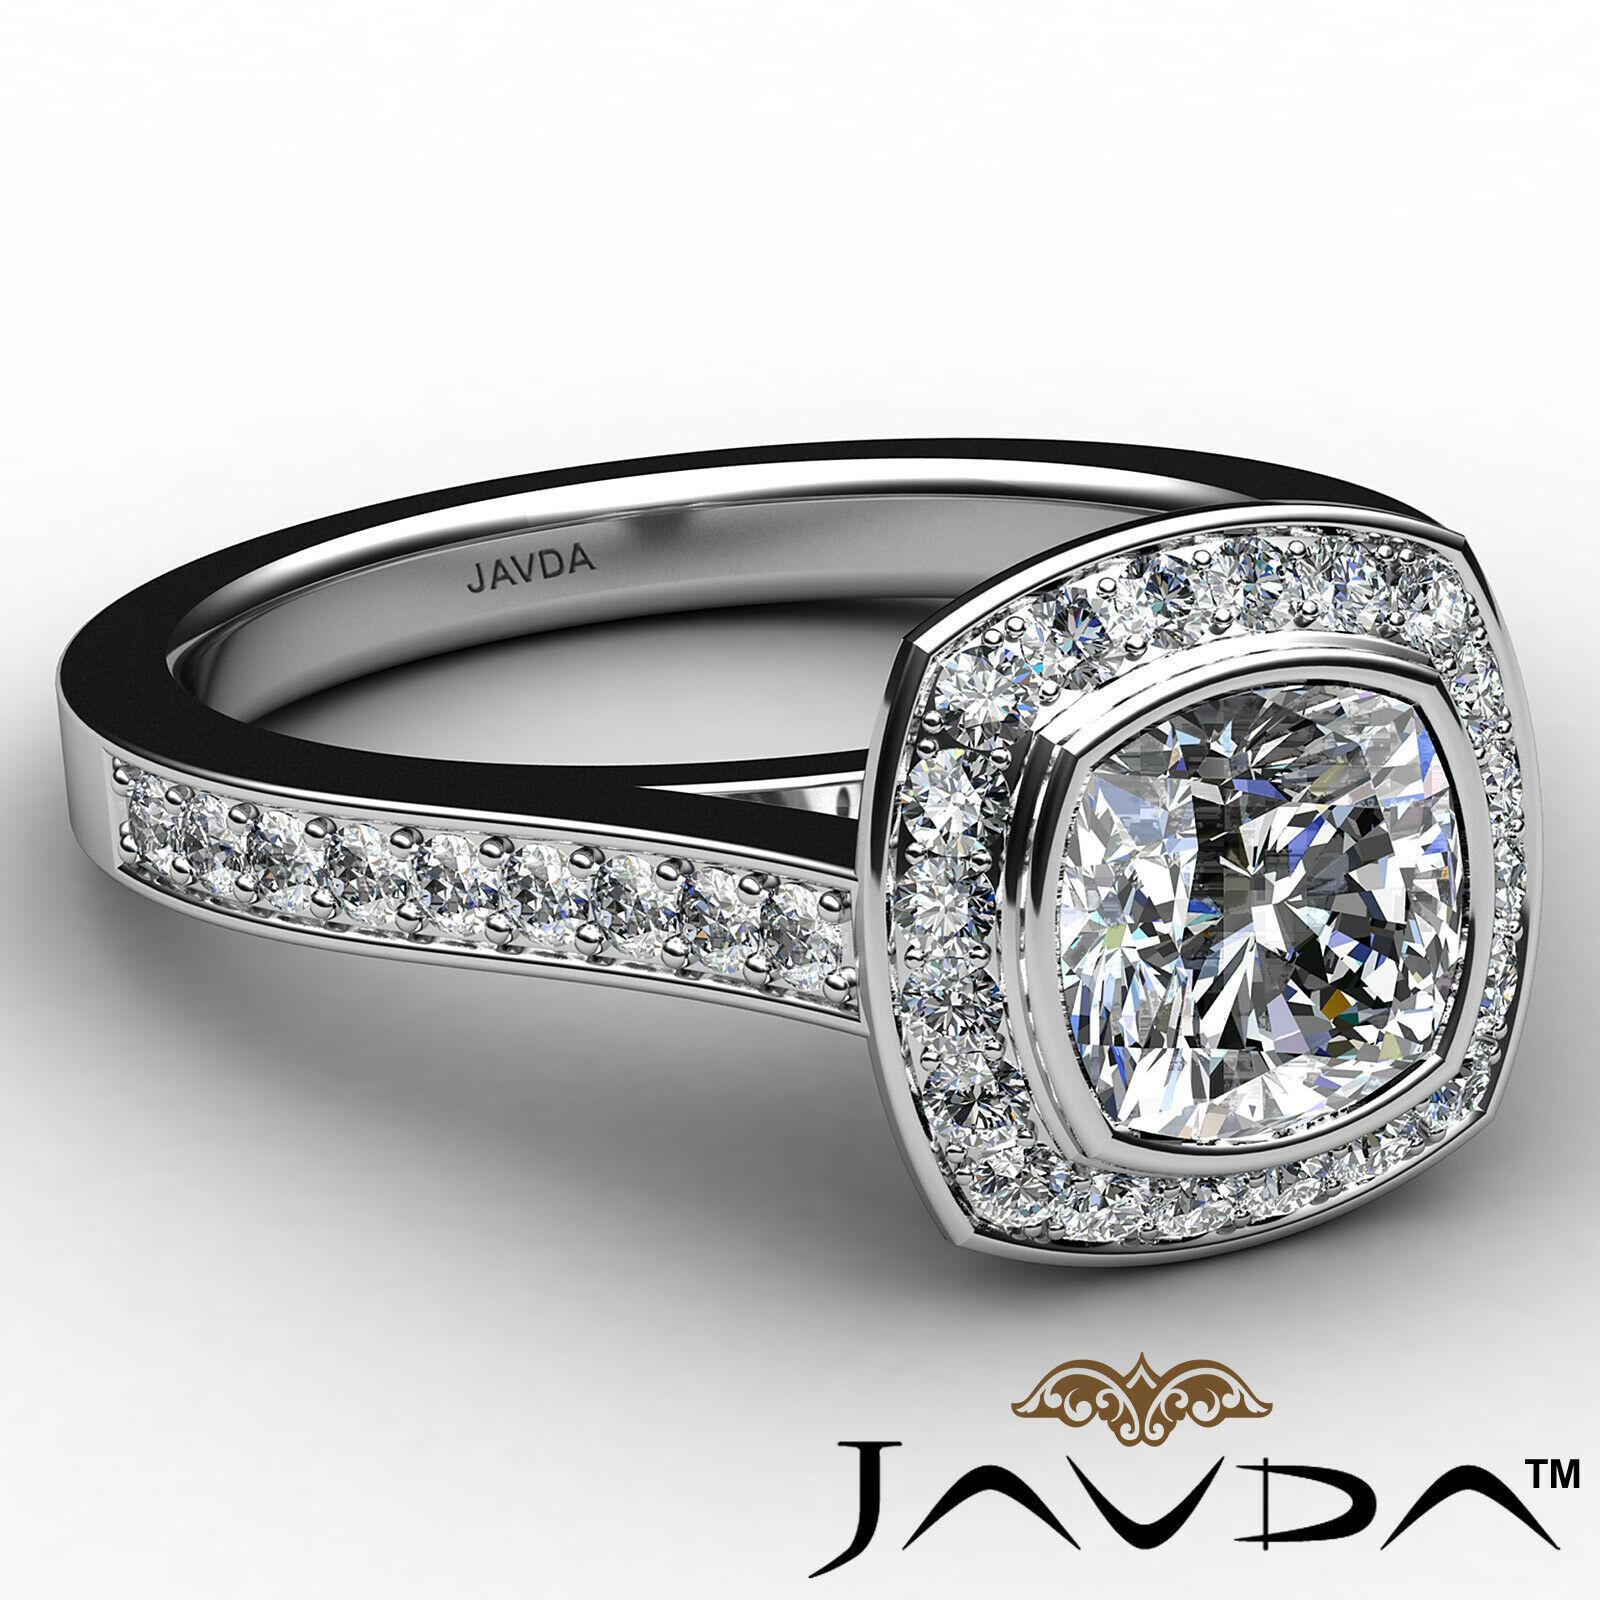 Micro Halo Cushion Diamond Engagement Ring GIA H Color & VS1 clarity 1.4 ctw 6